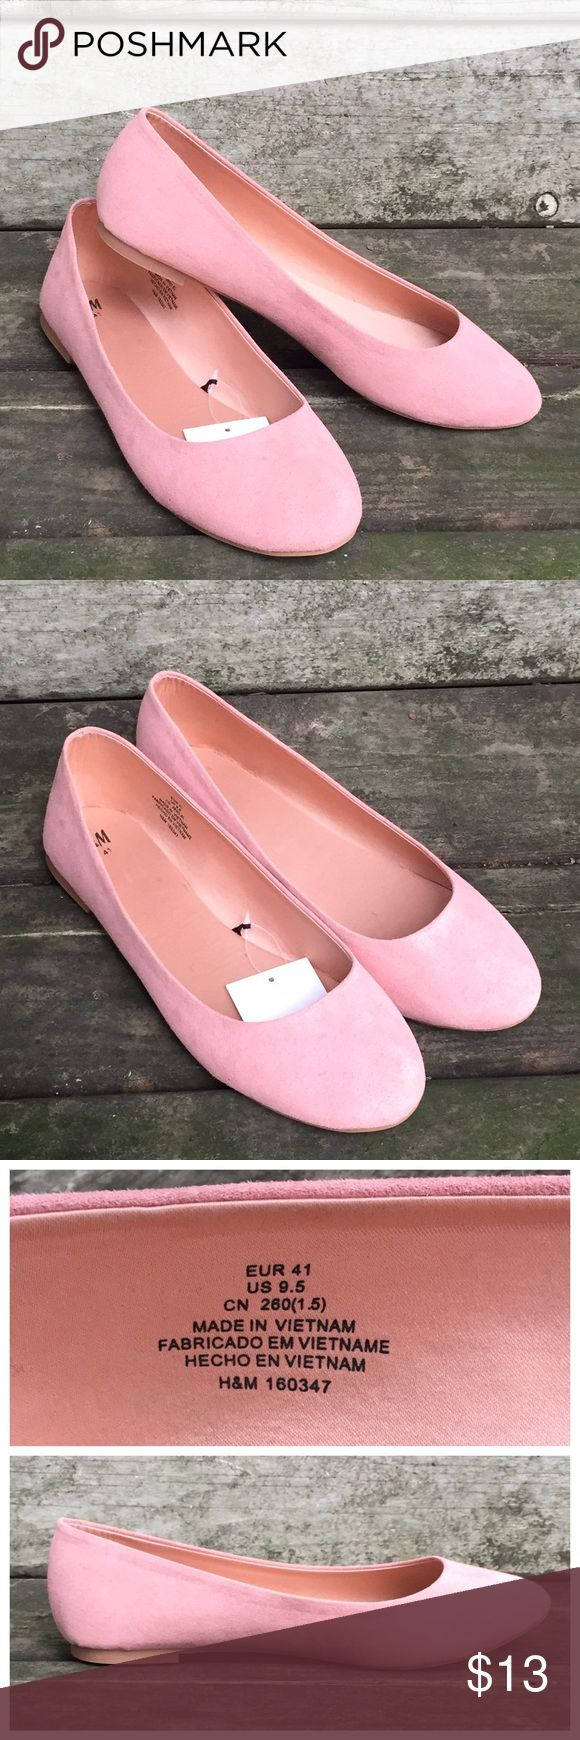 NEW H&M Flats New with tags soft pink flats. H&M size 9.5 US, size 41 EUR. H&M Shoes Flats & Loafers